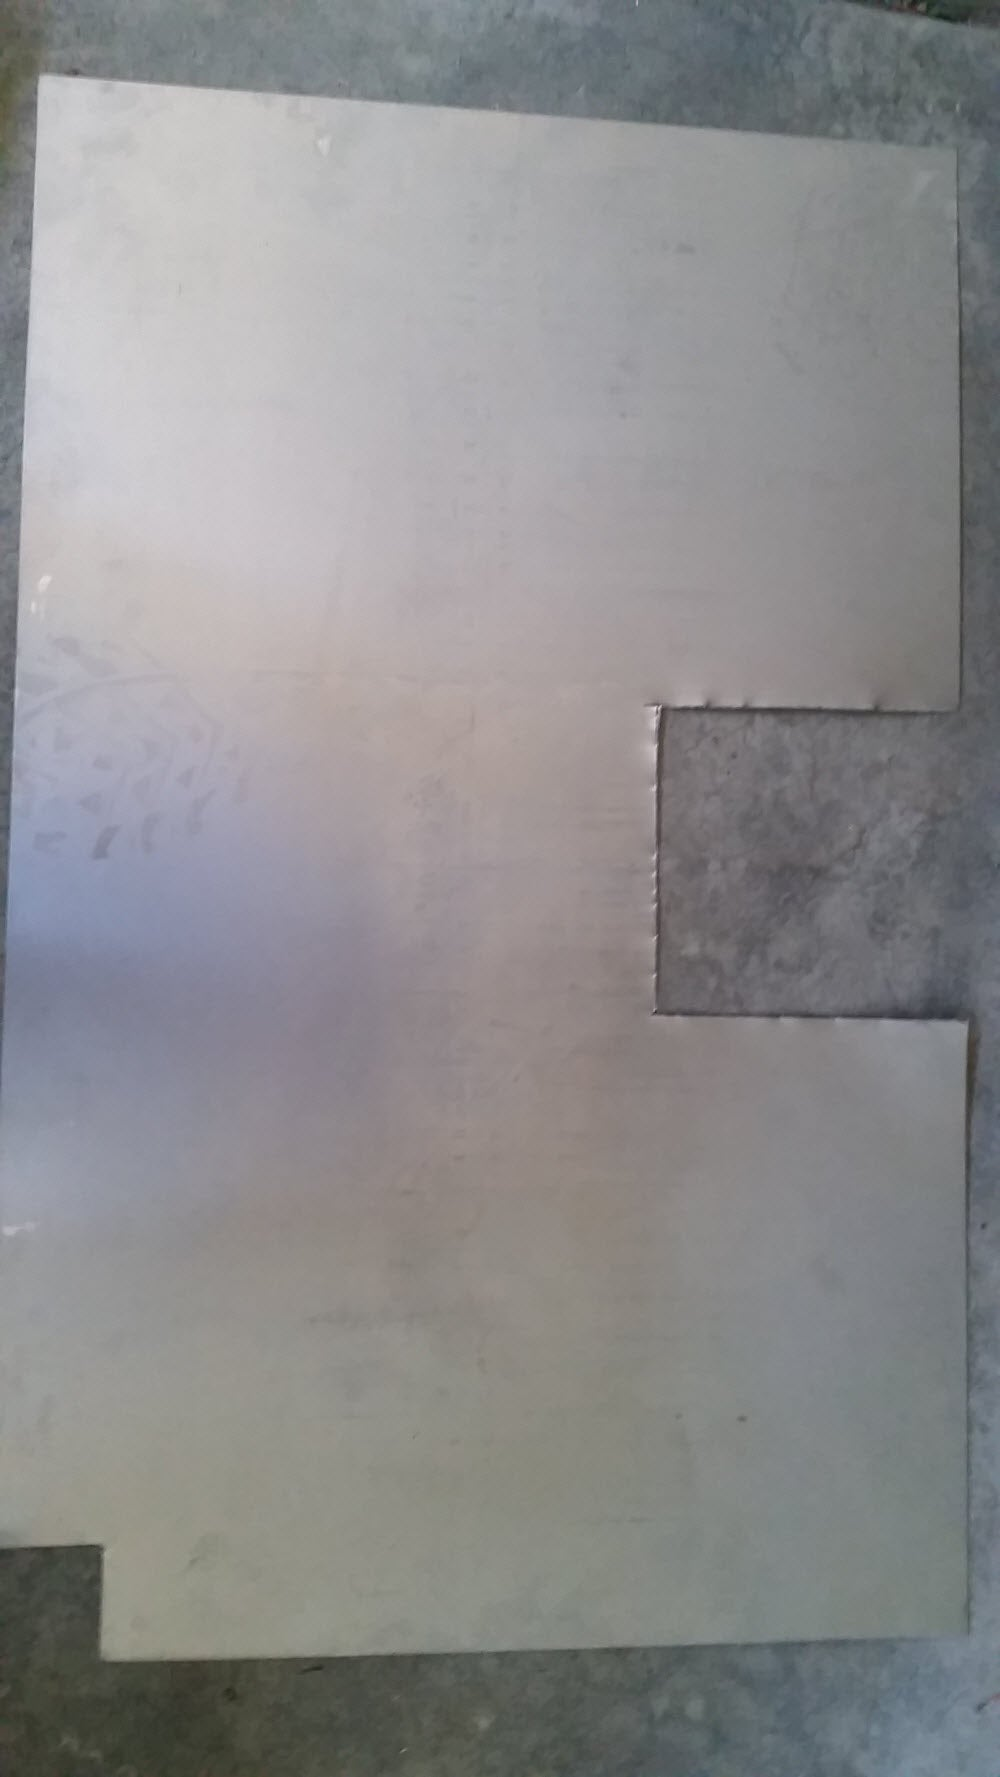 Make Inserts for Control Holes